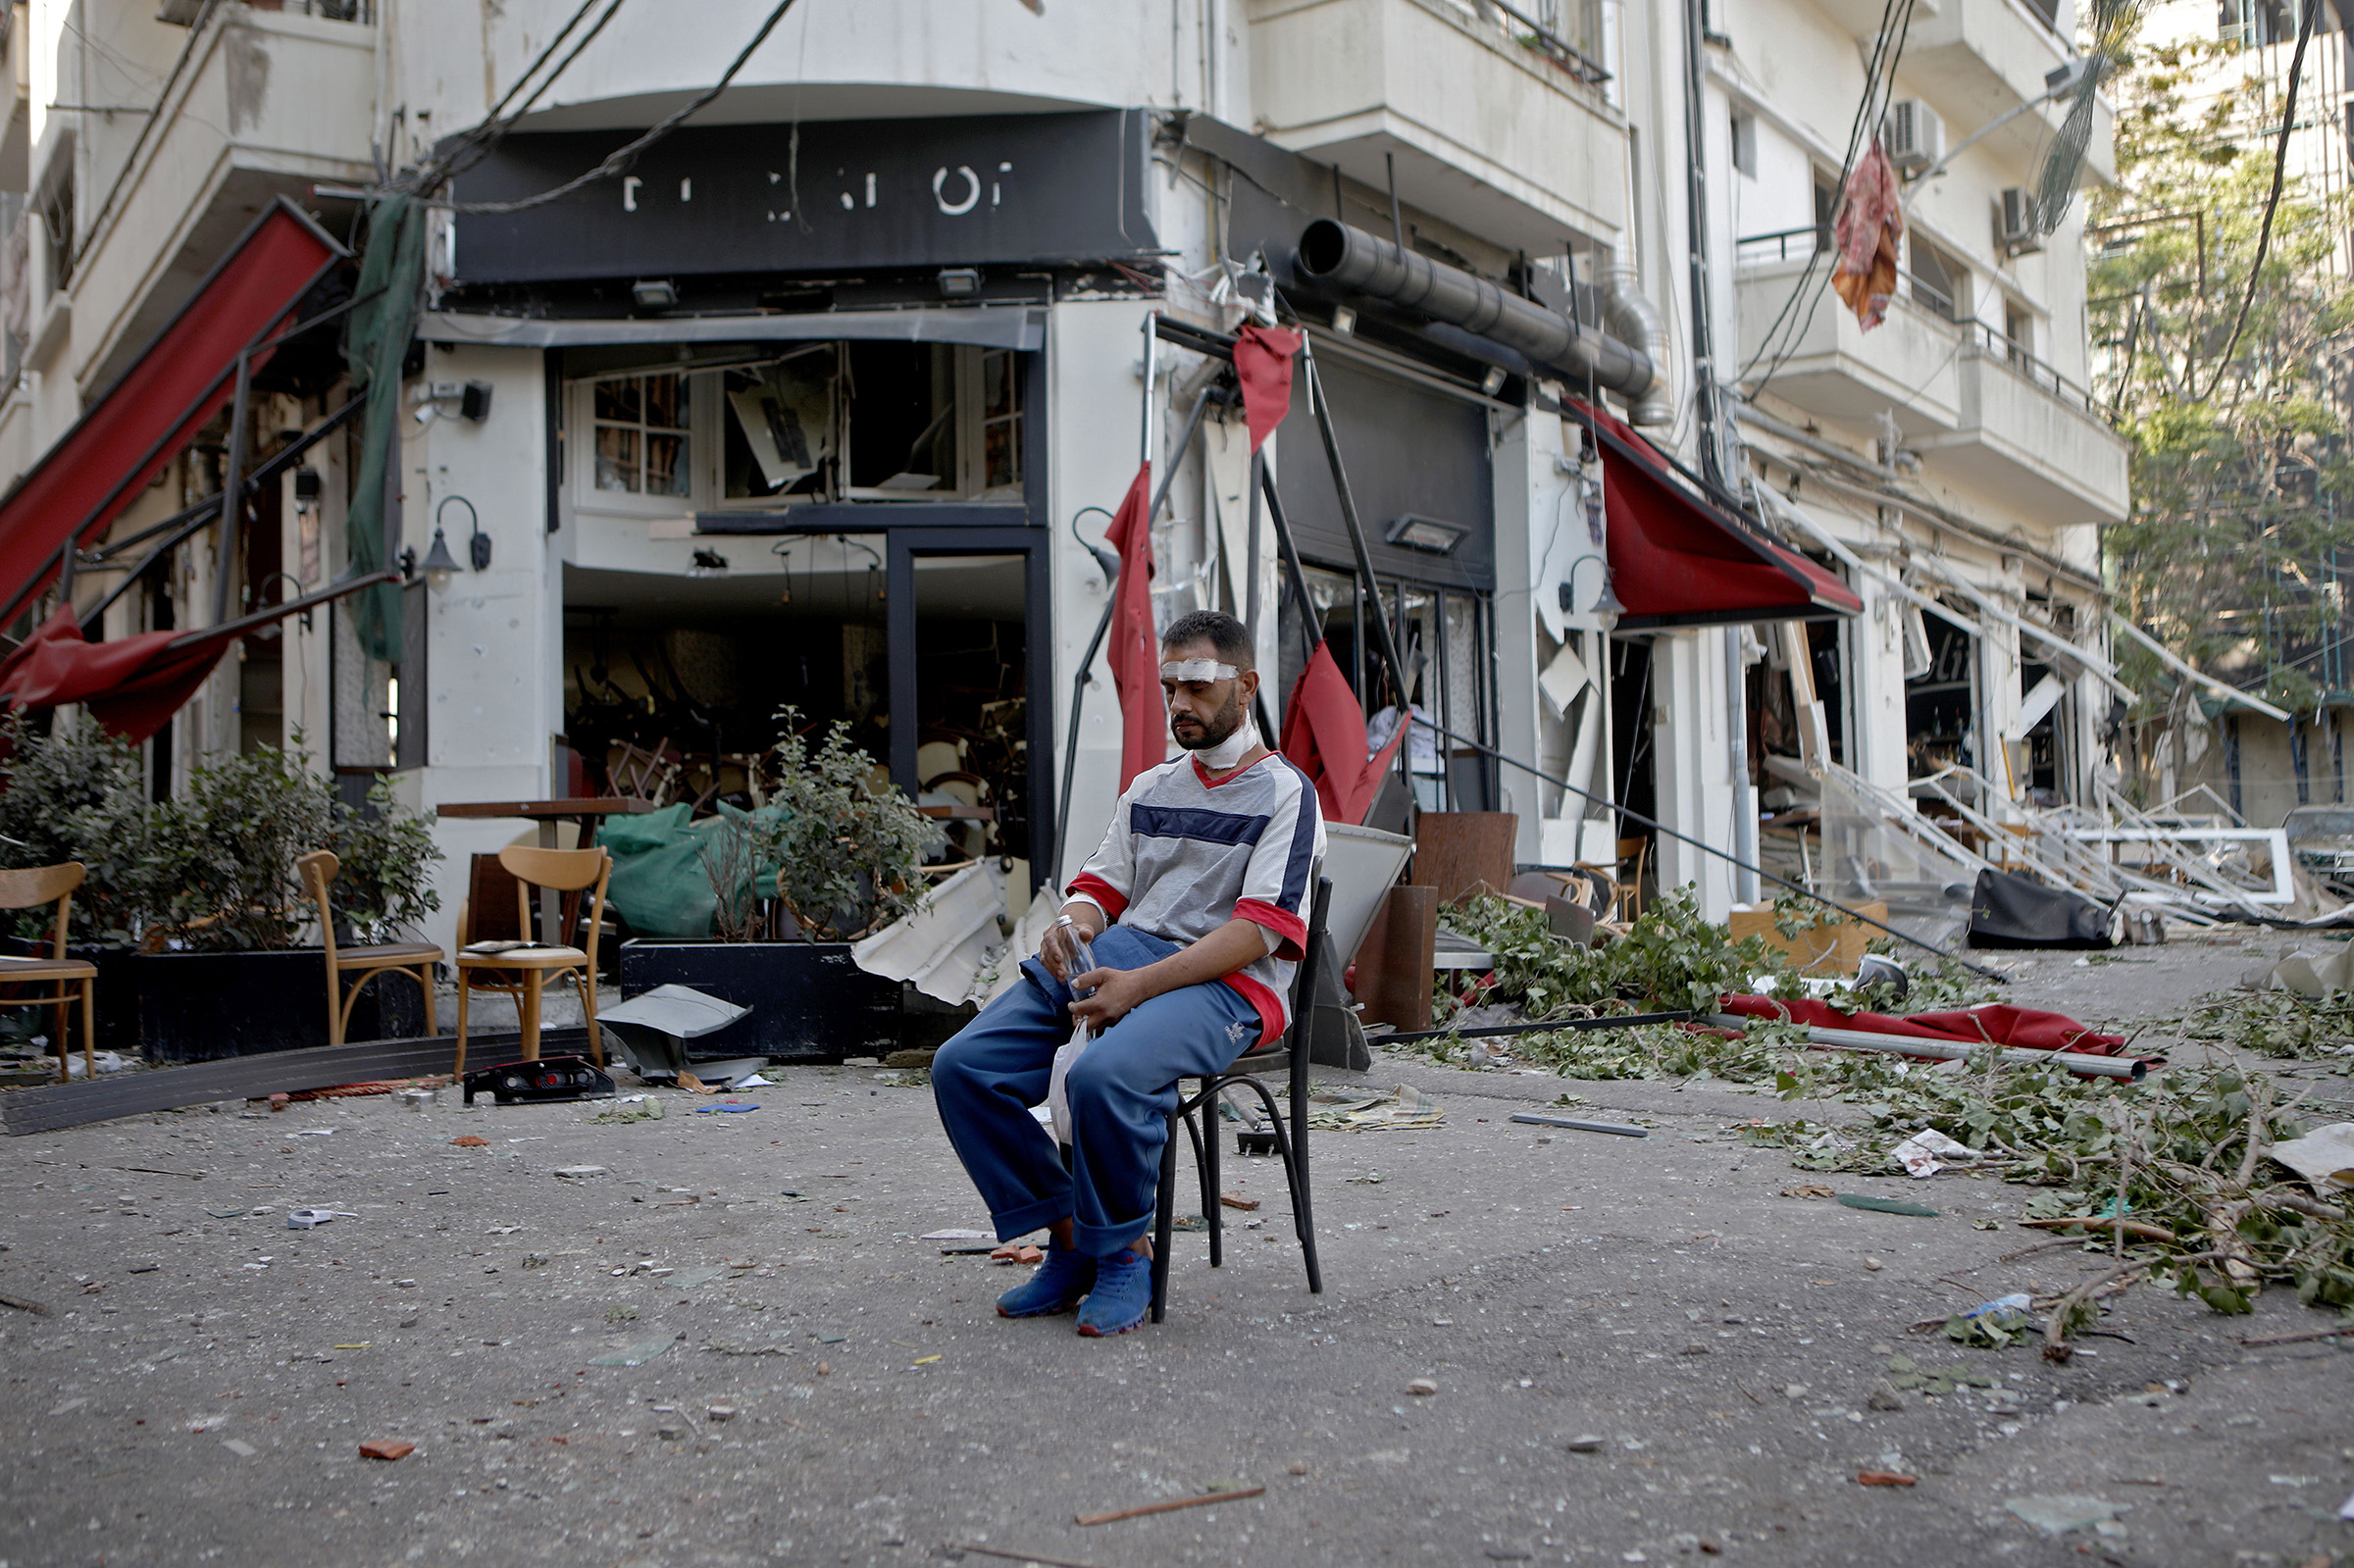 An injured man sits next to a restaurant in the Mar Mikhael neighborhood of Beirut on August 5 in the aftermath of the massive explosion.